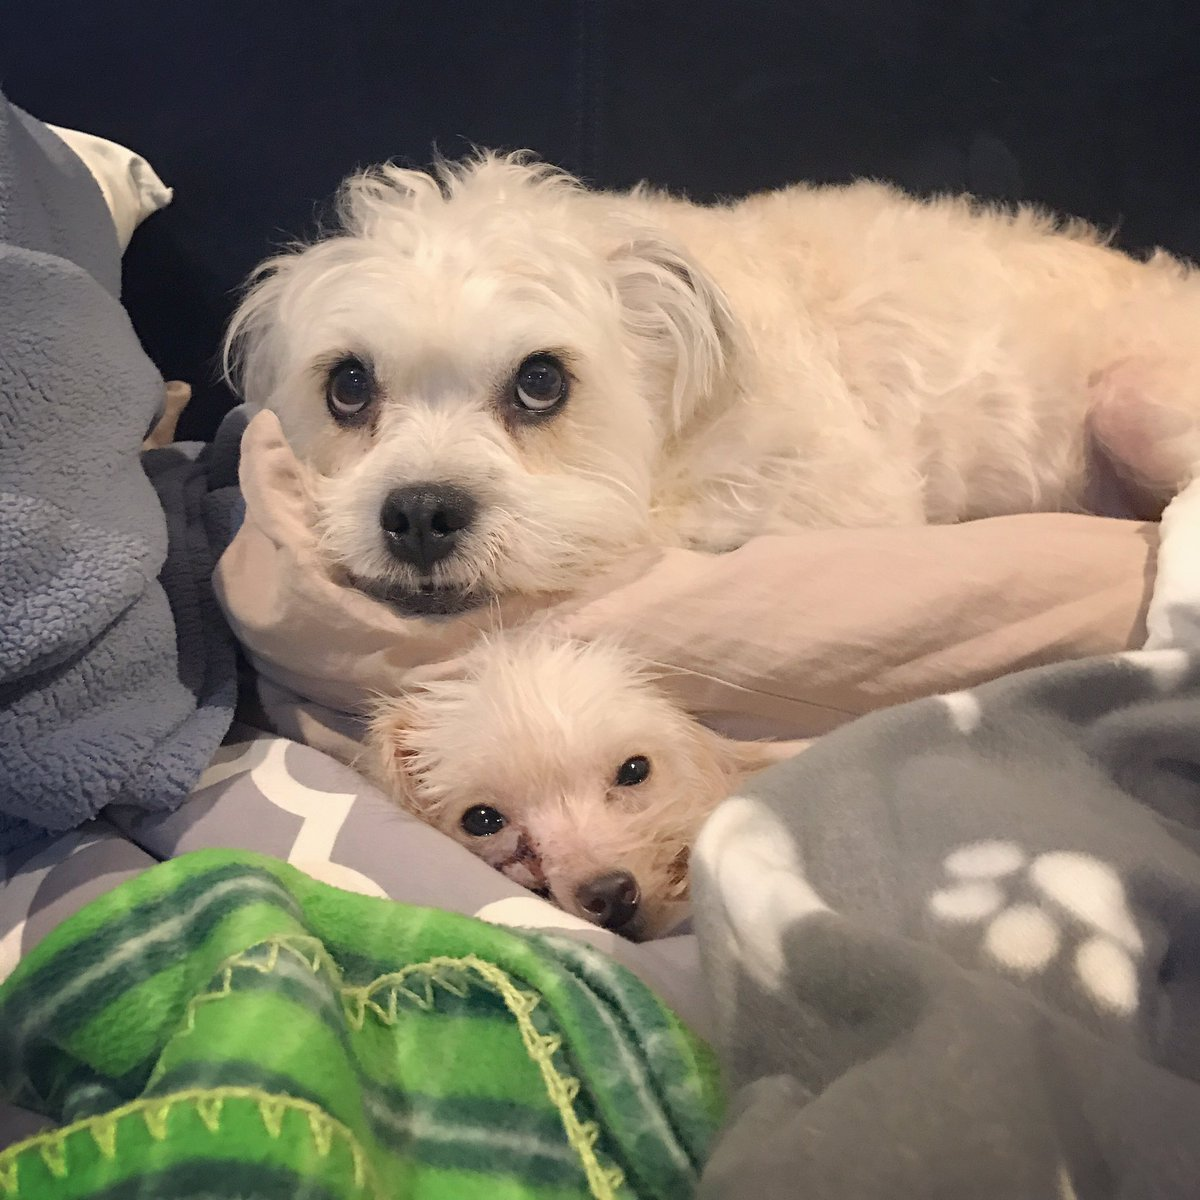 Just watching over her, like a good foster bro is supposed to do. Goodnight and sleep tight, Lil&#39; Kim. We got ya.  #fosterdog  #austin <br>http://pic.twitter.com/RCrONXy2pp